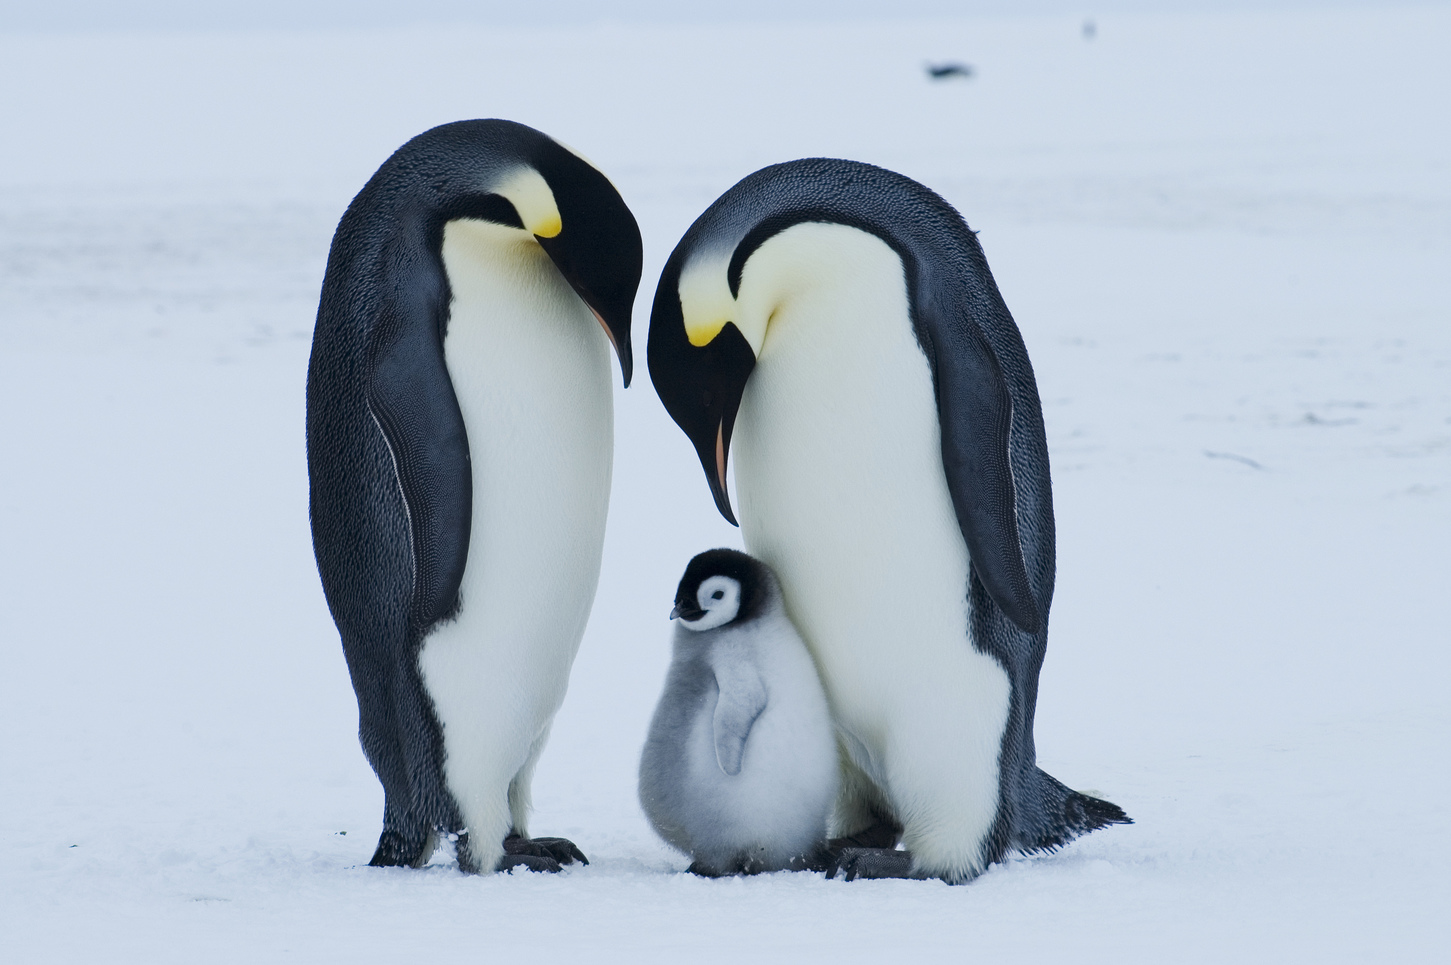 the characteristics of emperor penguins the birds of antarctic Prey of the emperor penguin is the antarctic characteristics of birds from one emperor pen- guin colony in the ross sea for this initial anal.